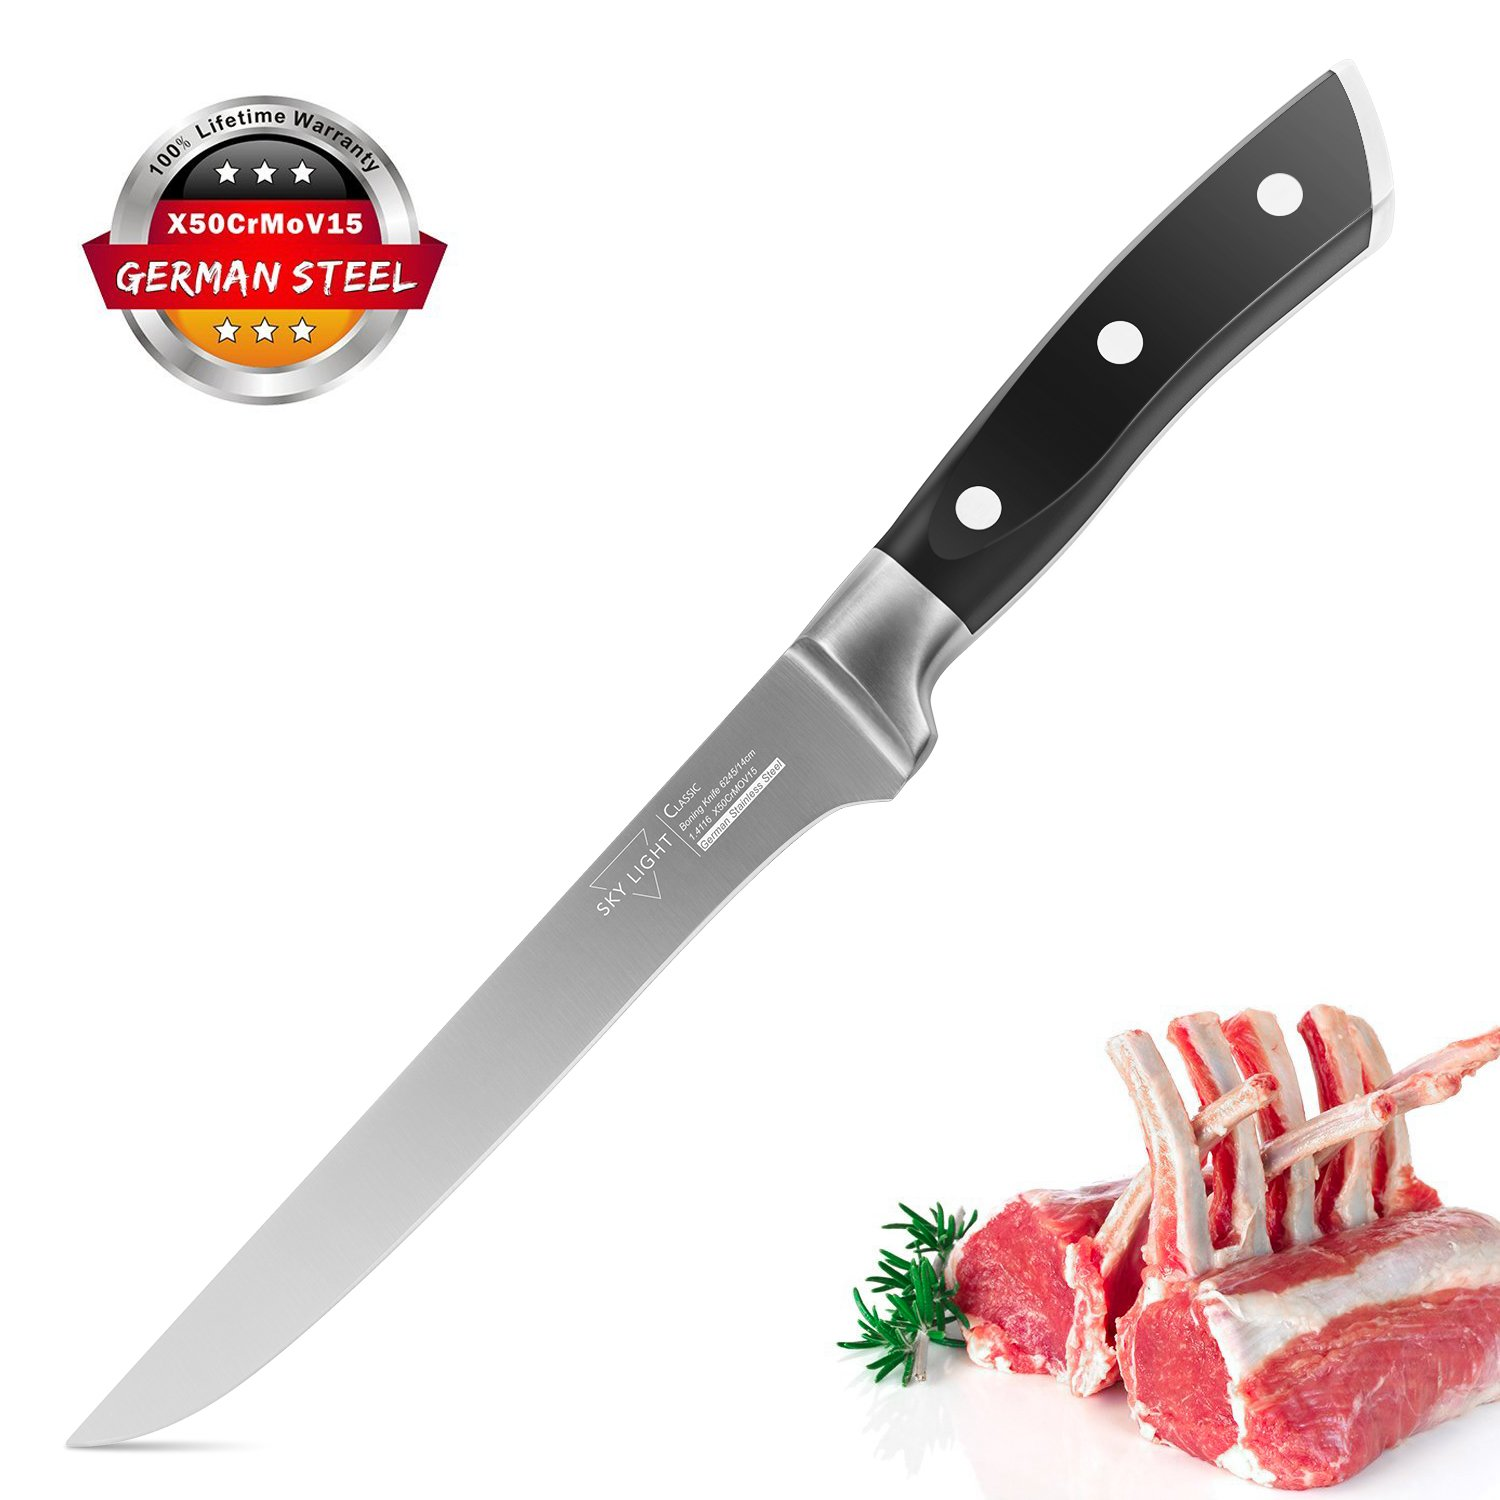 Boning Knife Flexible Fillet Knife 5.5 Inch Kitchen knife Forged Razor Sharp Blade German High Carbon Stainless Steel Cutlery with Ergonomic Handle by SKY LIGHT